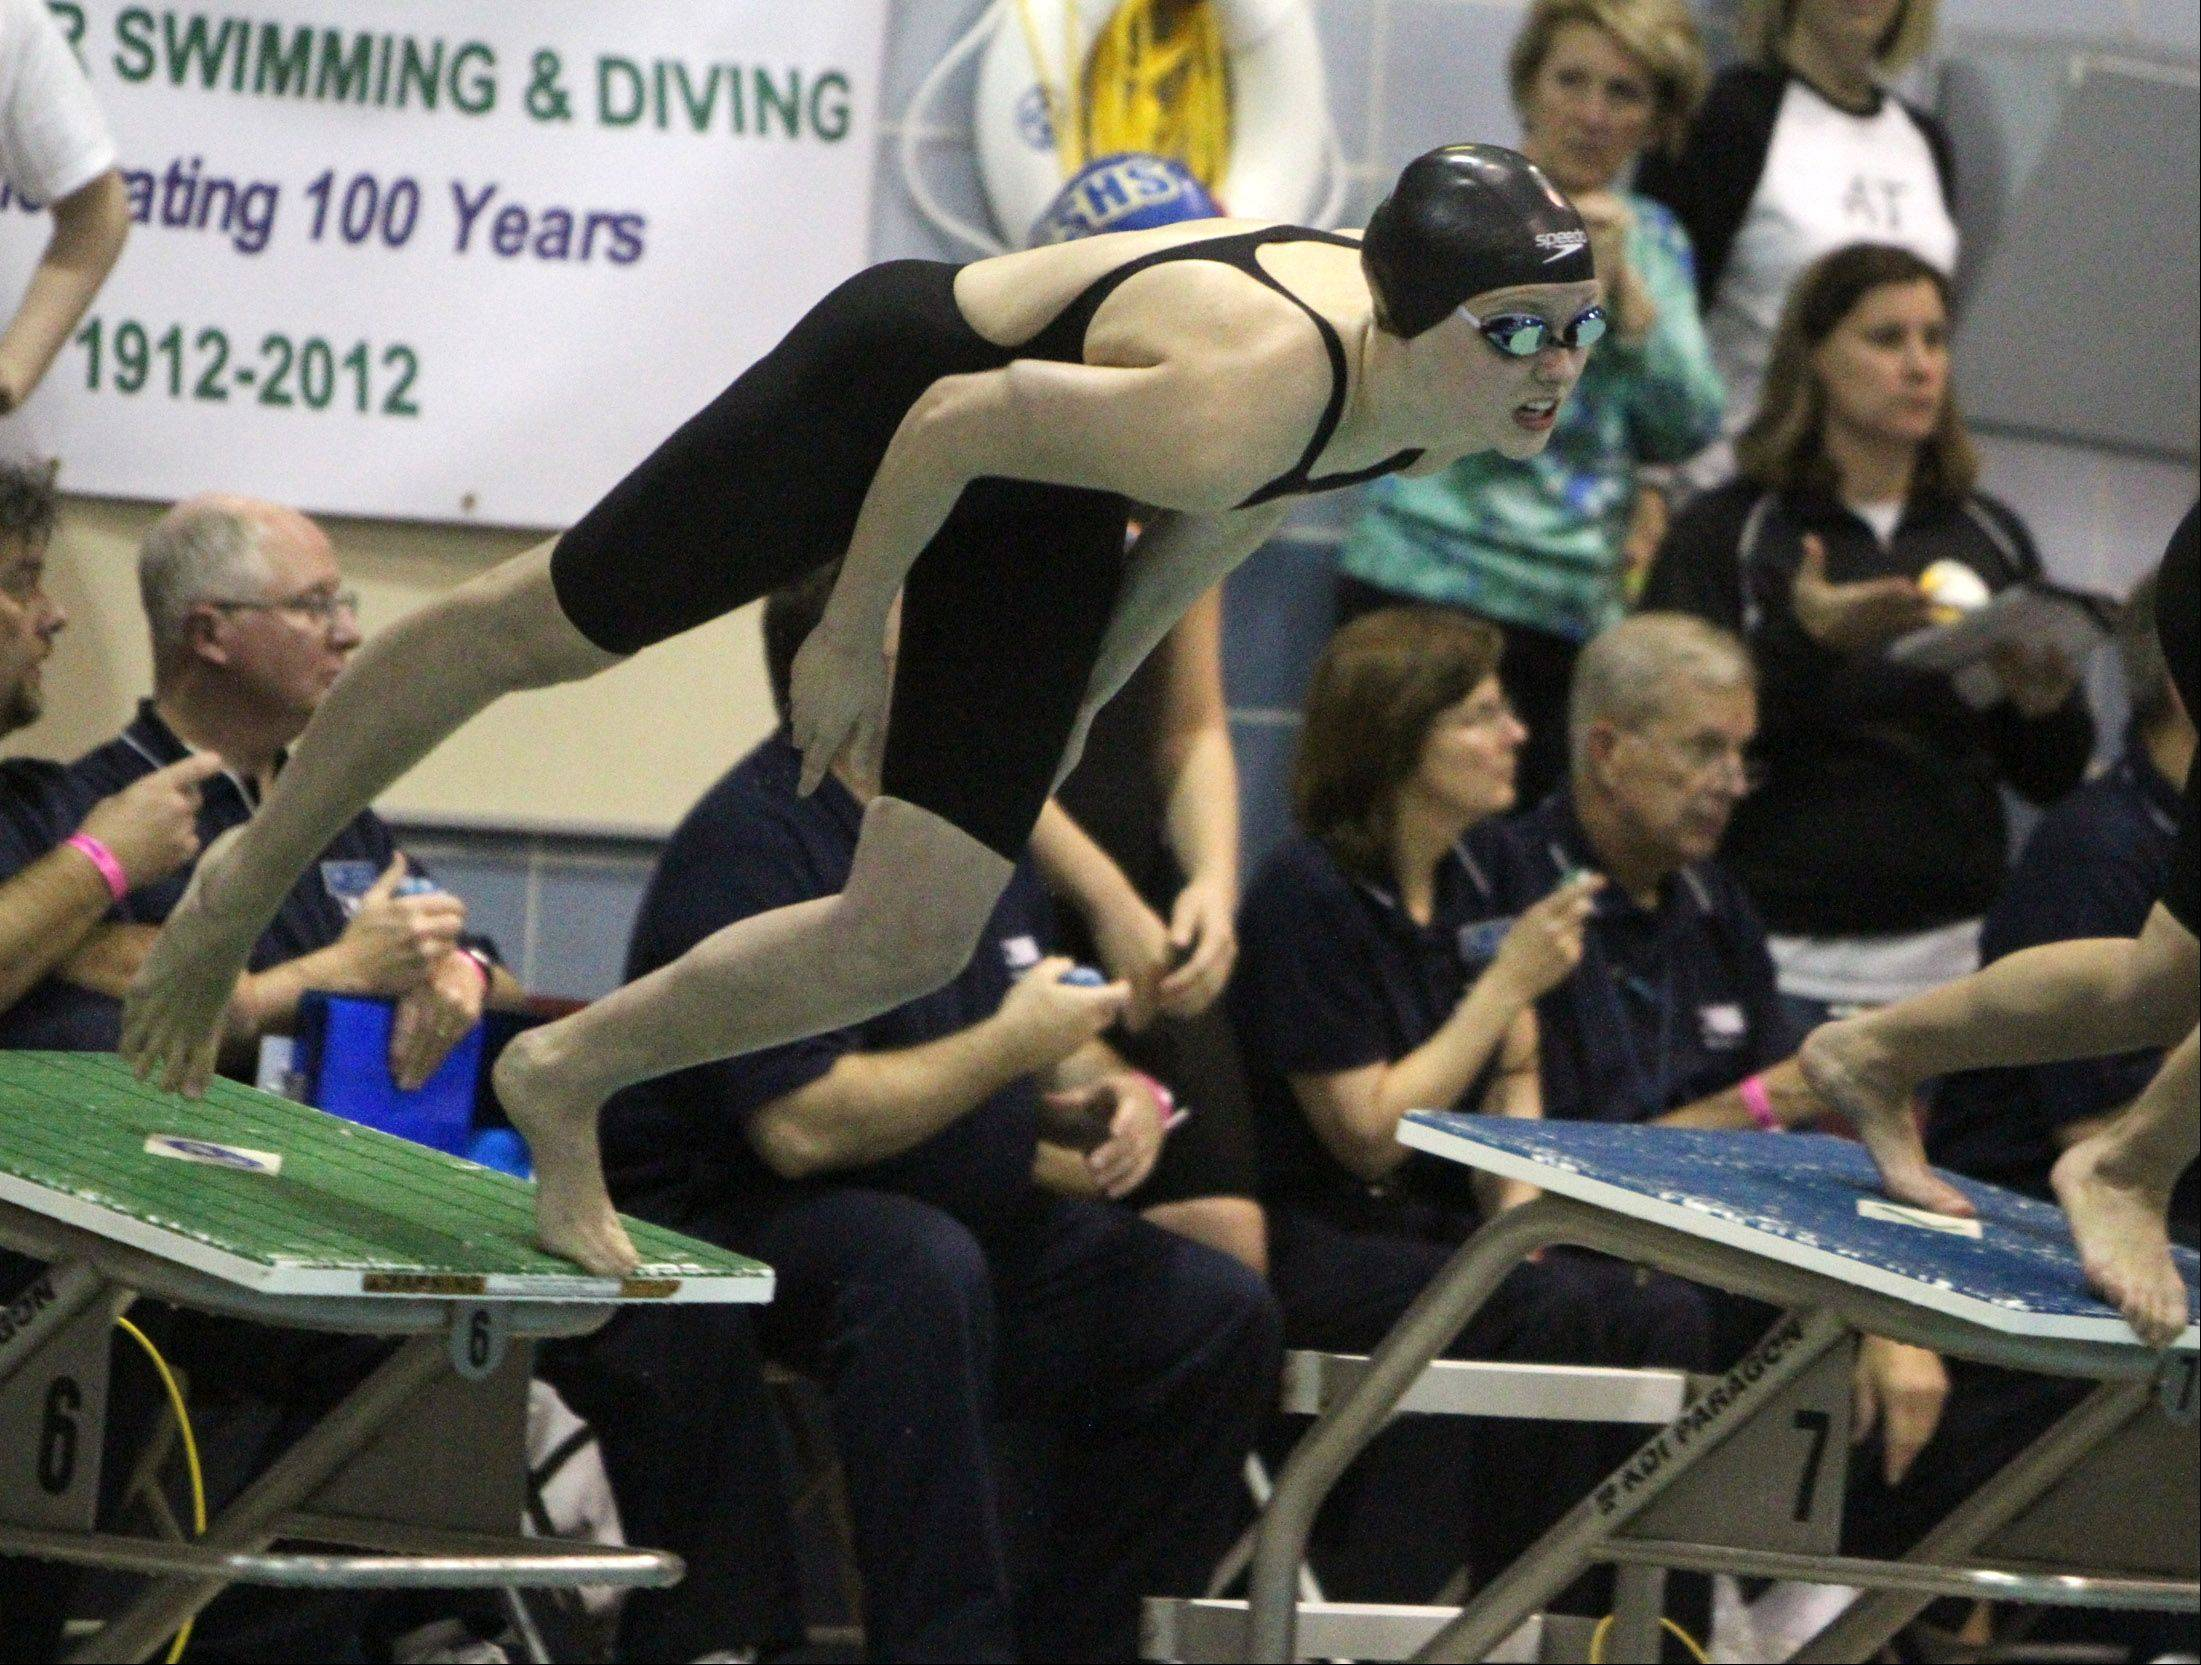 Buffalo Grove's Veronika Jedryka finished the 100-yard freestyle with a time of :52.76 at the IHSA state final preliminaries in Winnetka on Friday.